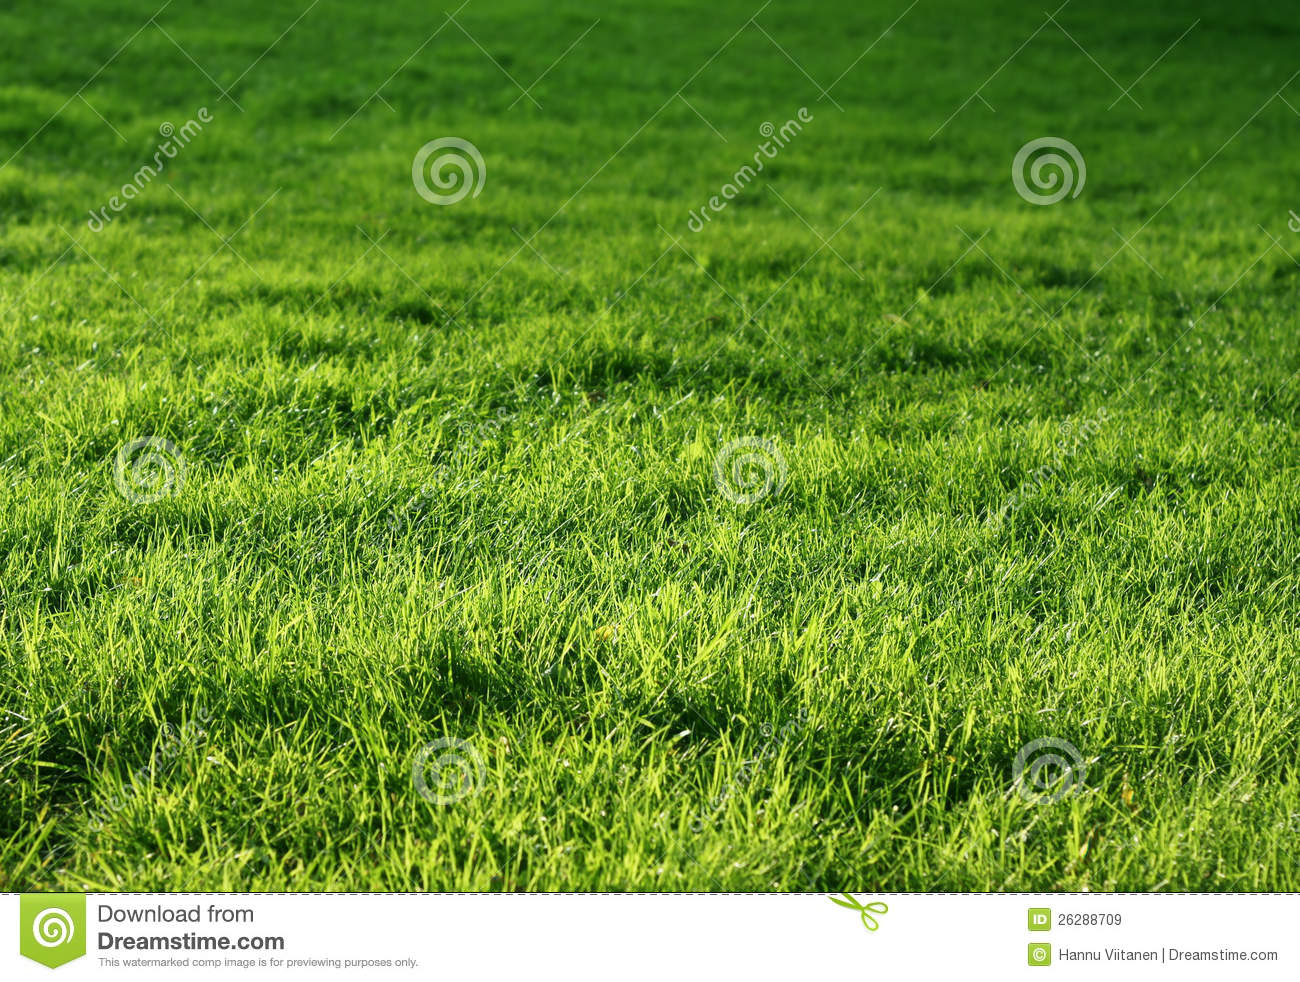 how to keep grass green naturally